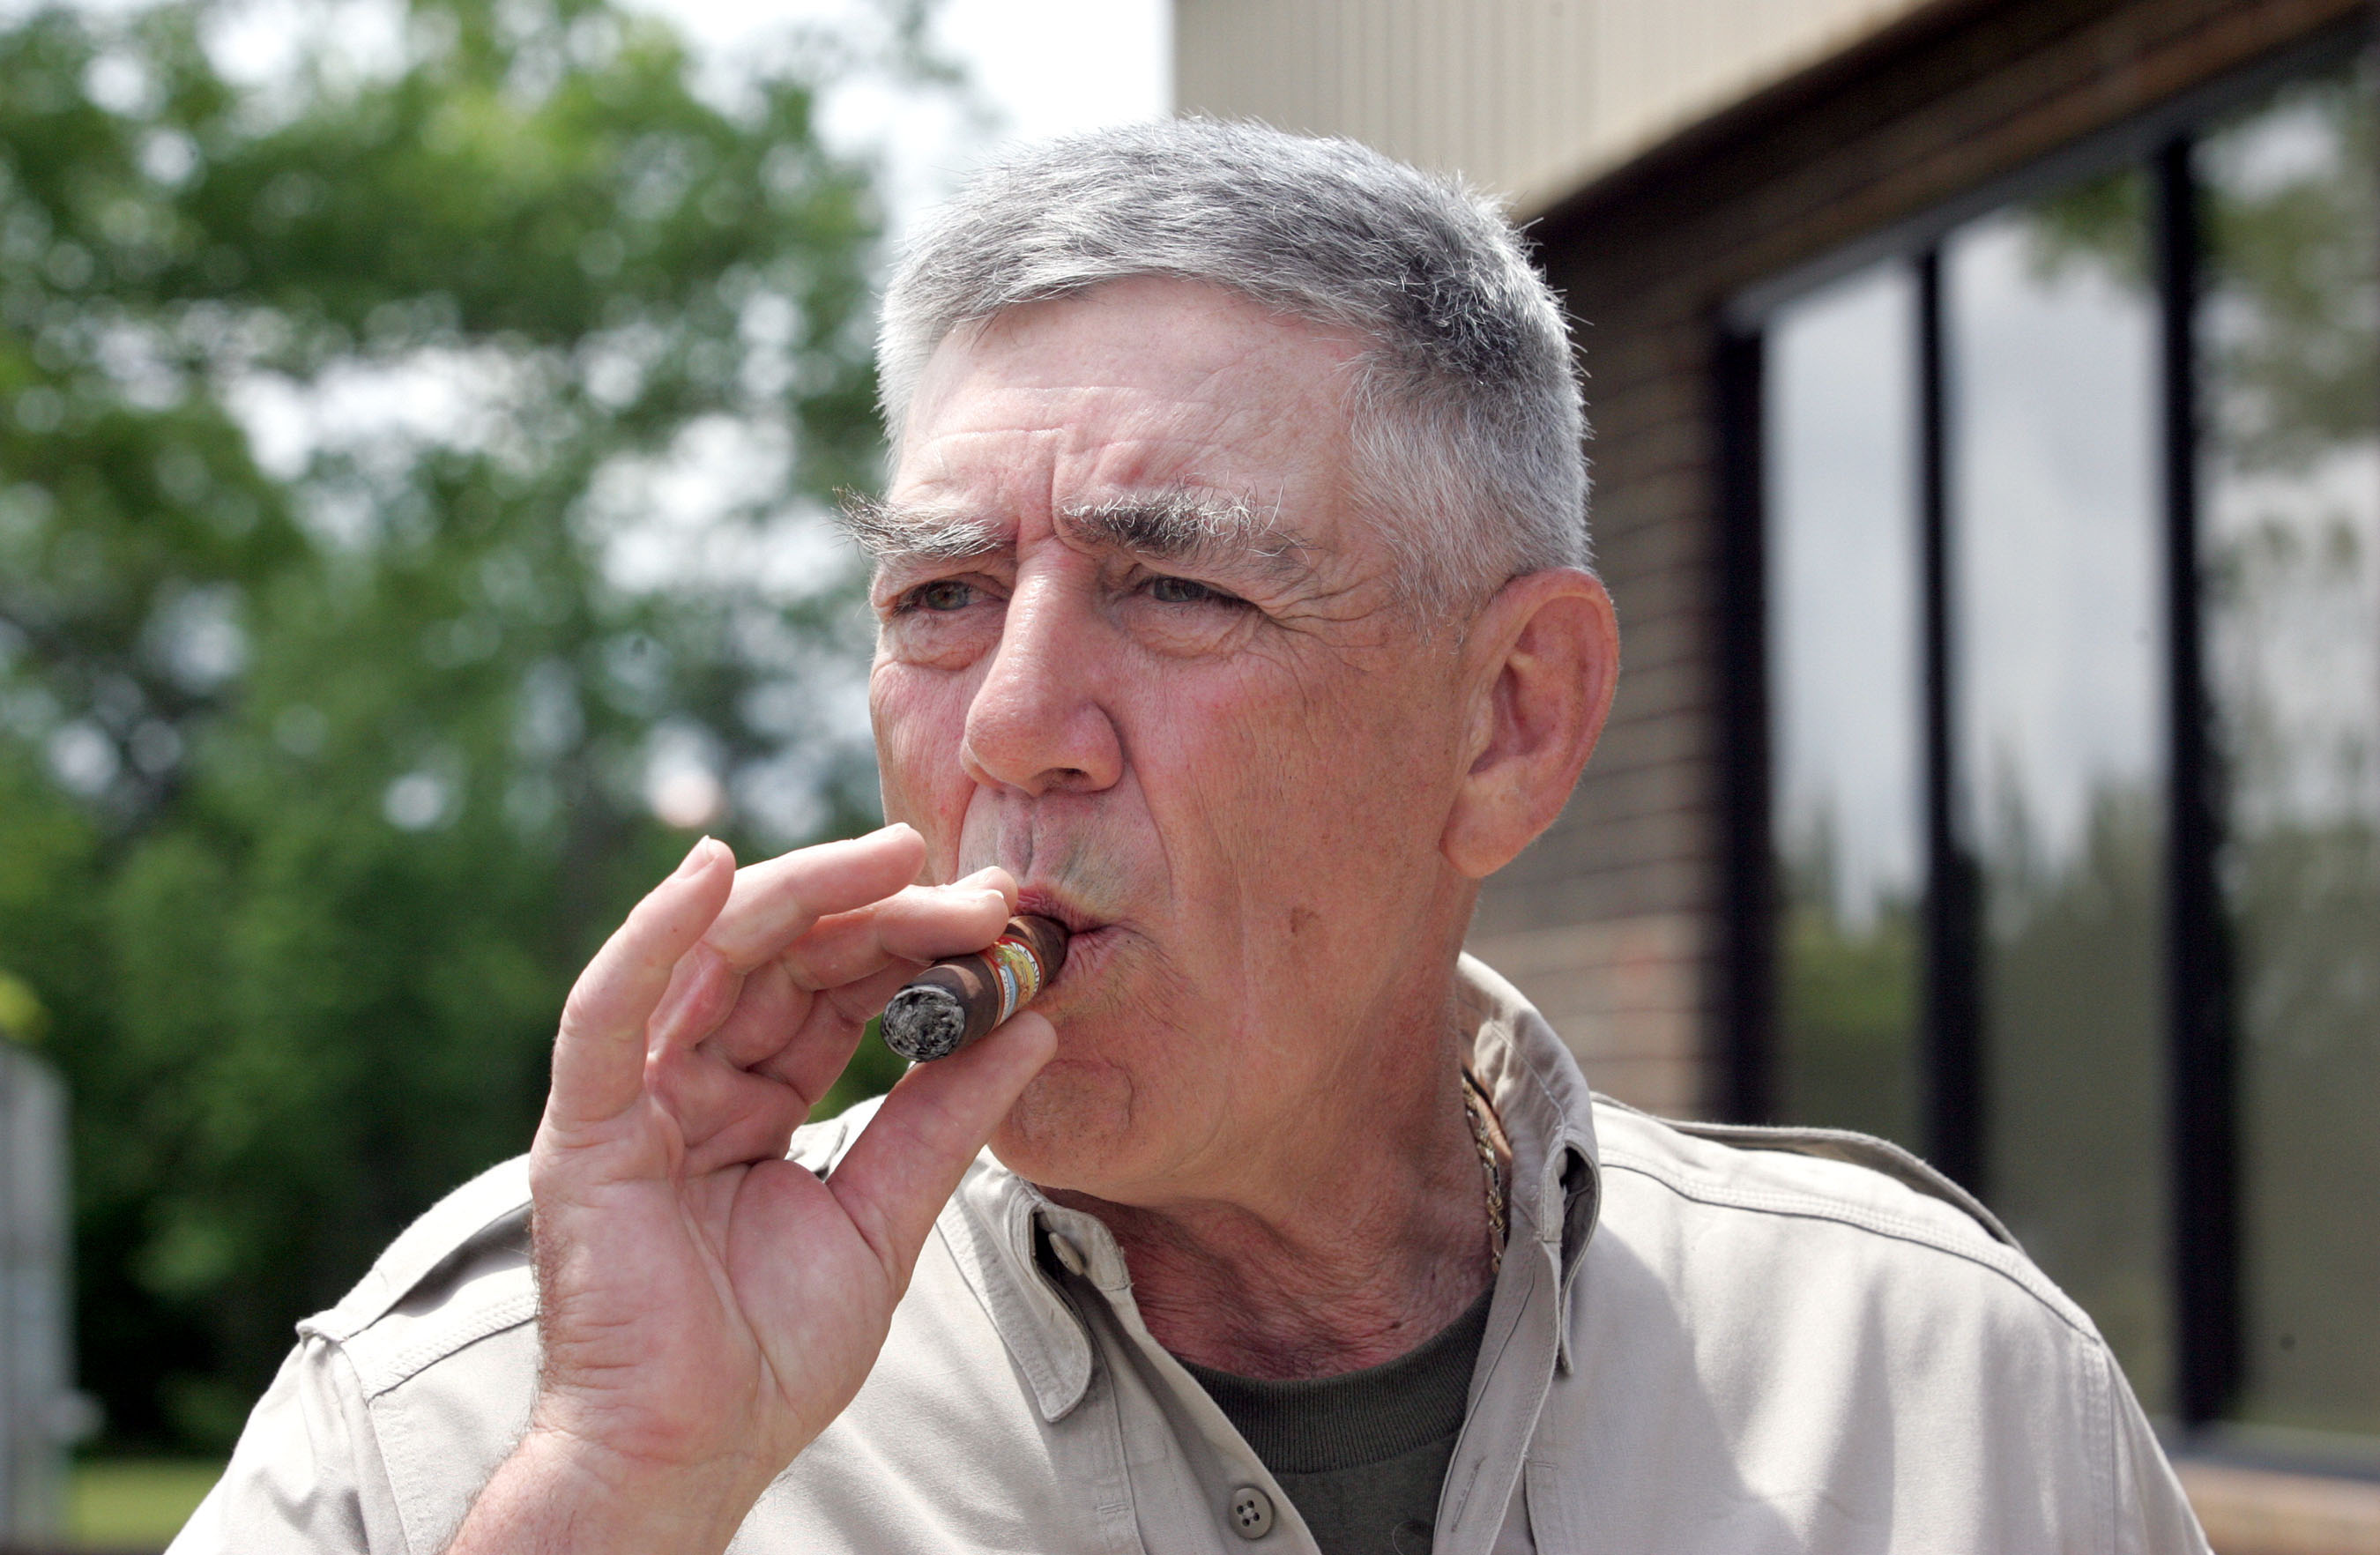 Clash of Characters: Gunny Hartman takes title, R. Lee Ermey thanks his fans